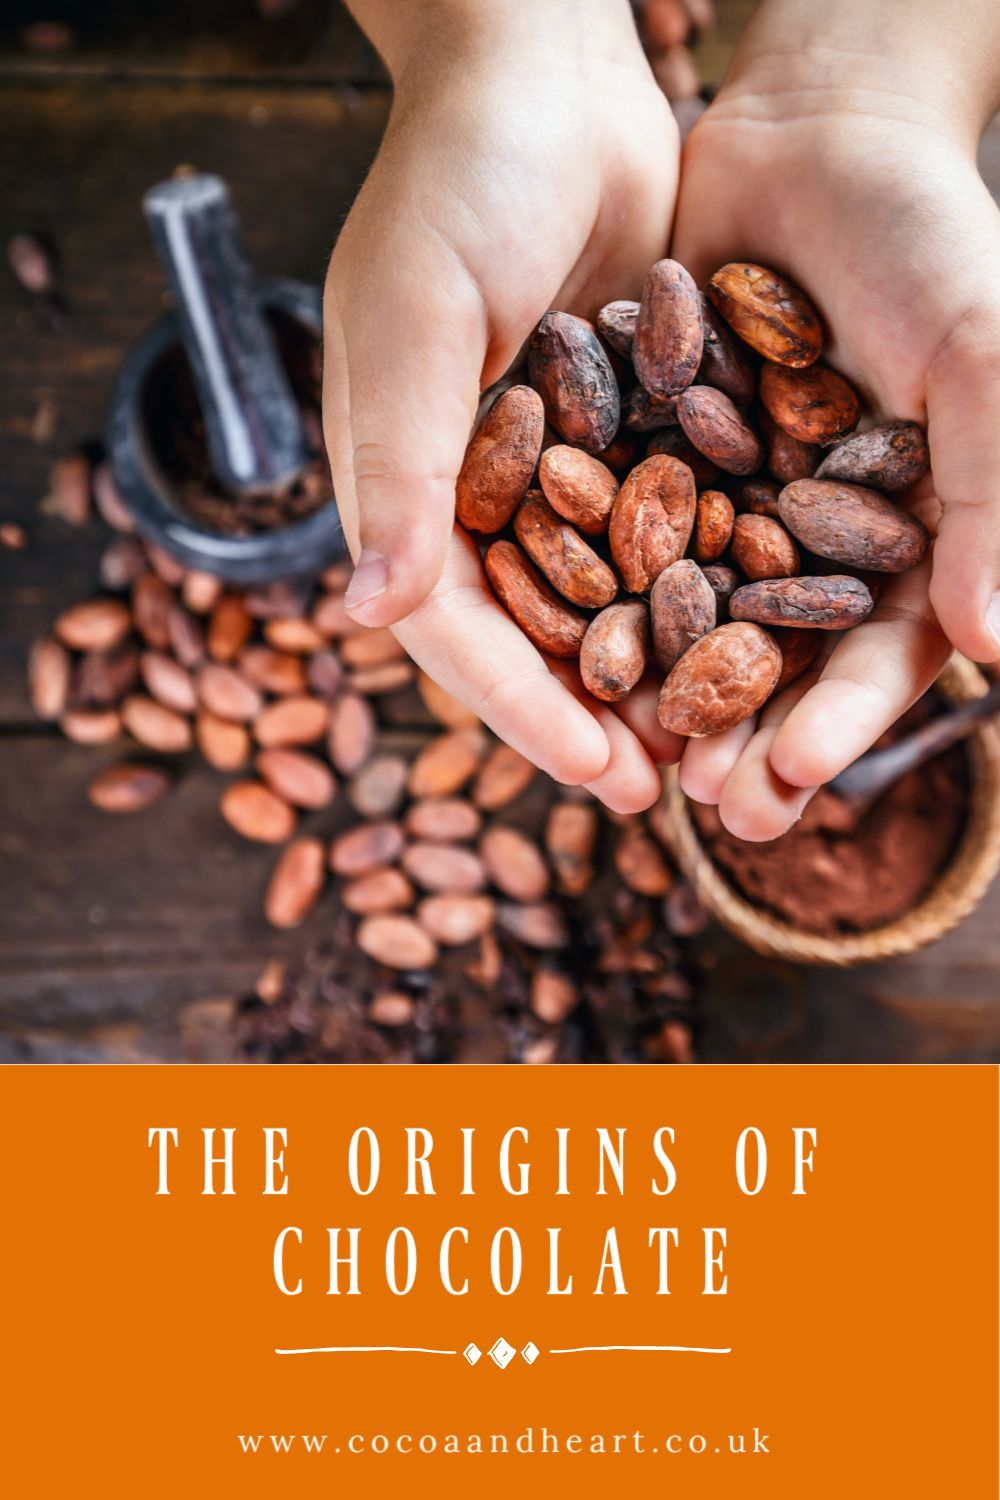 The Origins of Chocolate - Where does chocolate come from?